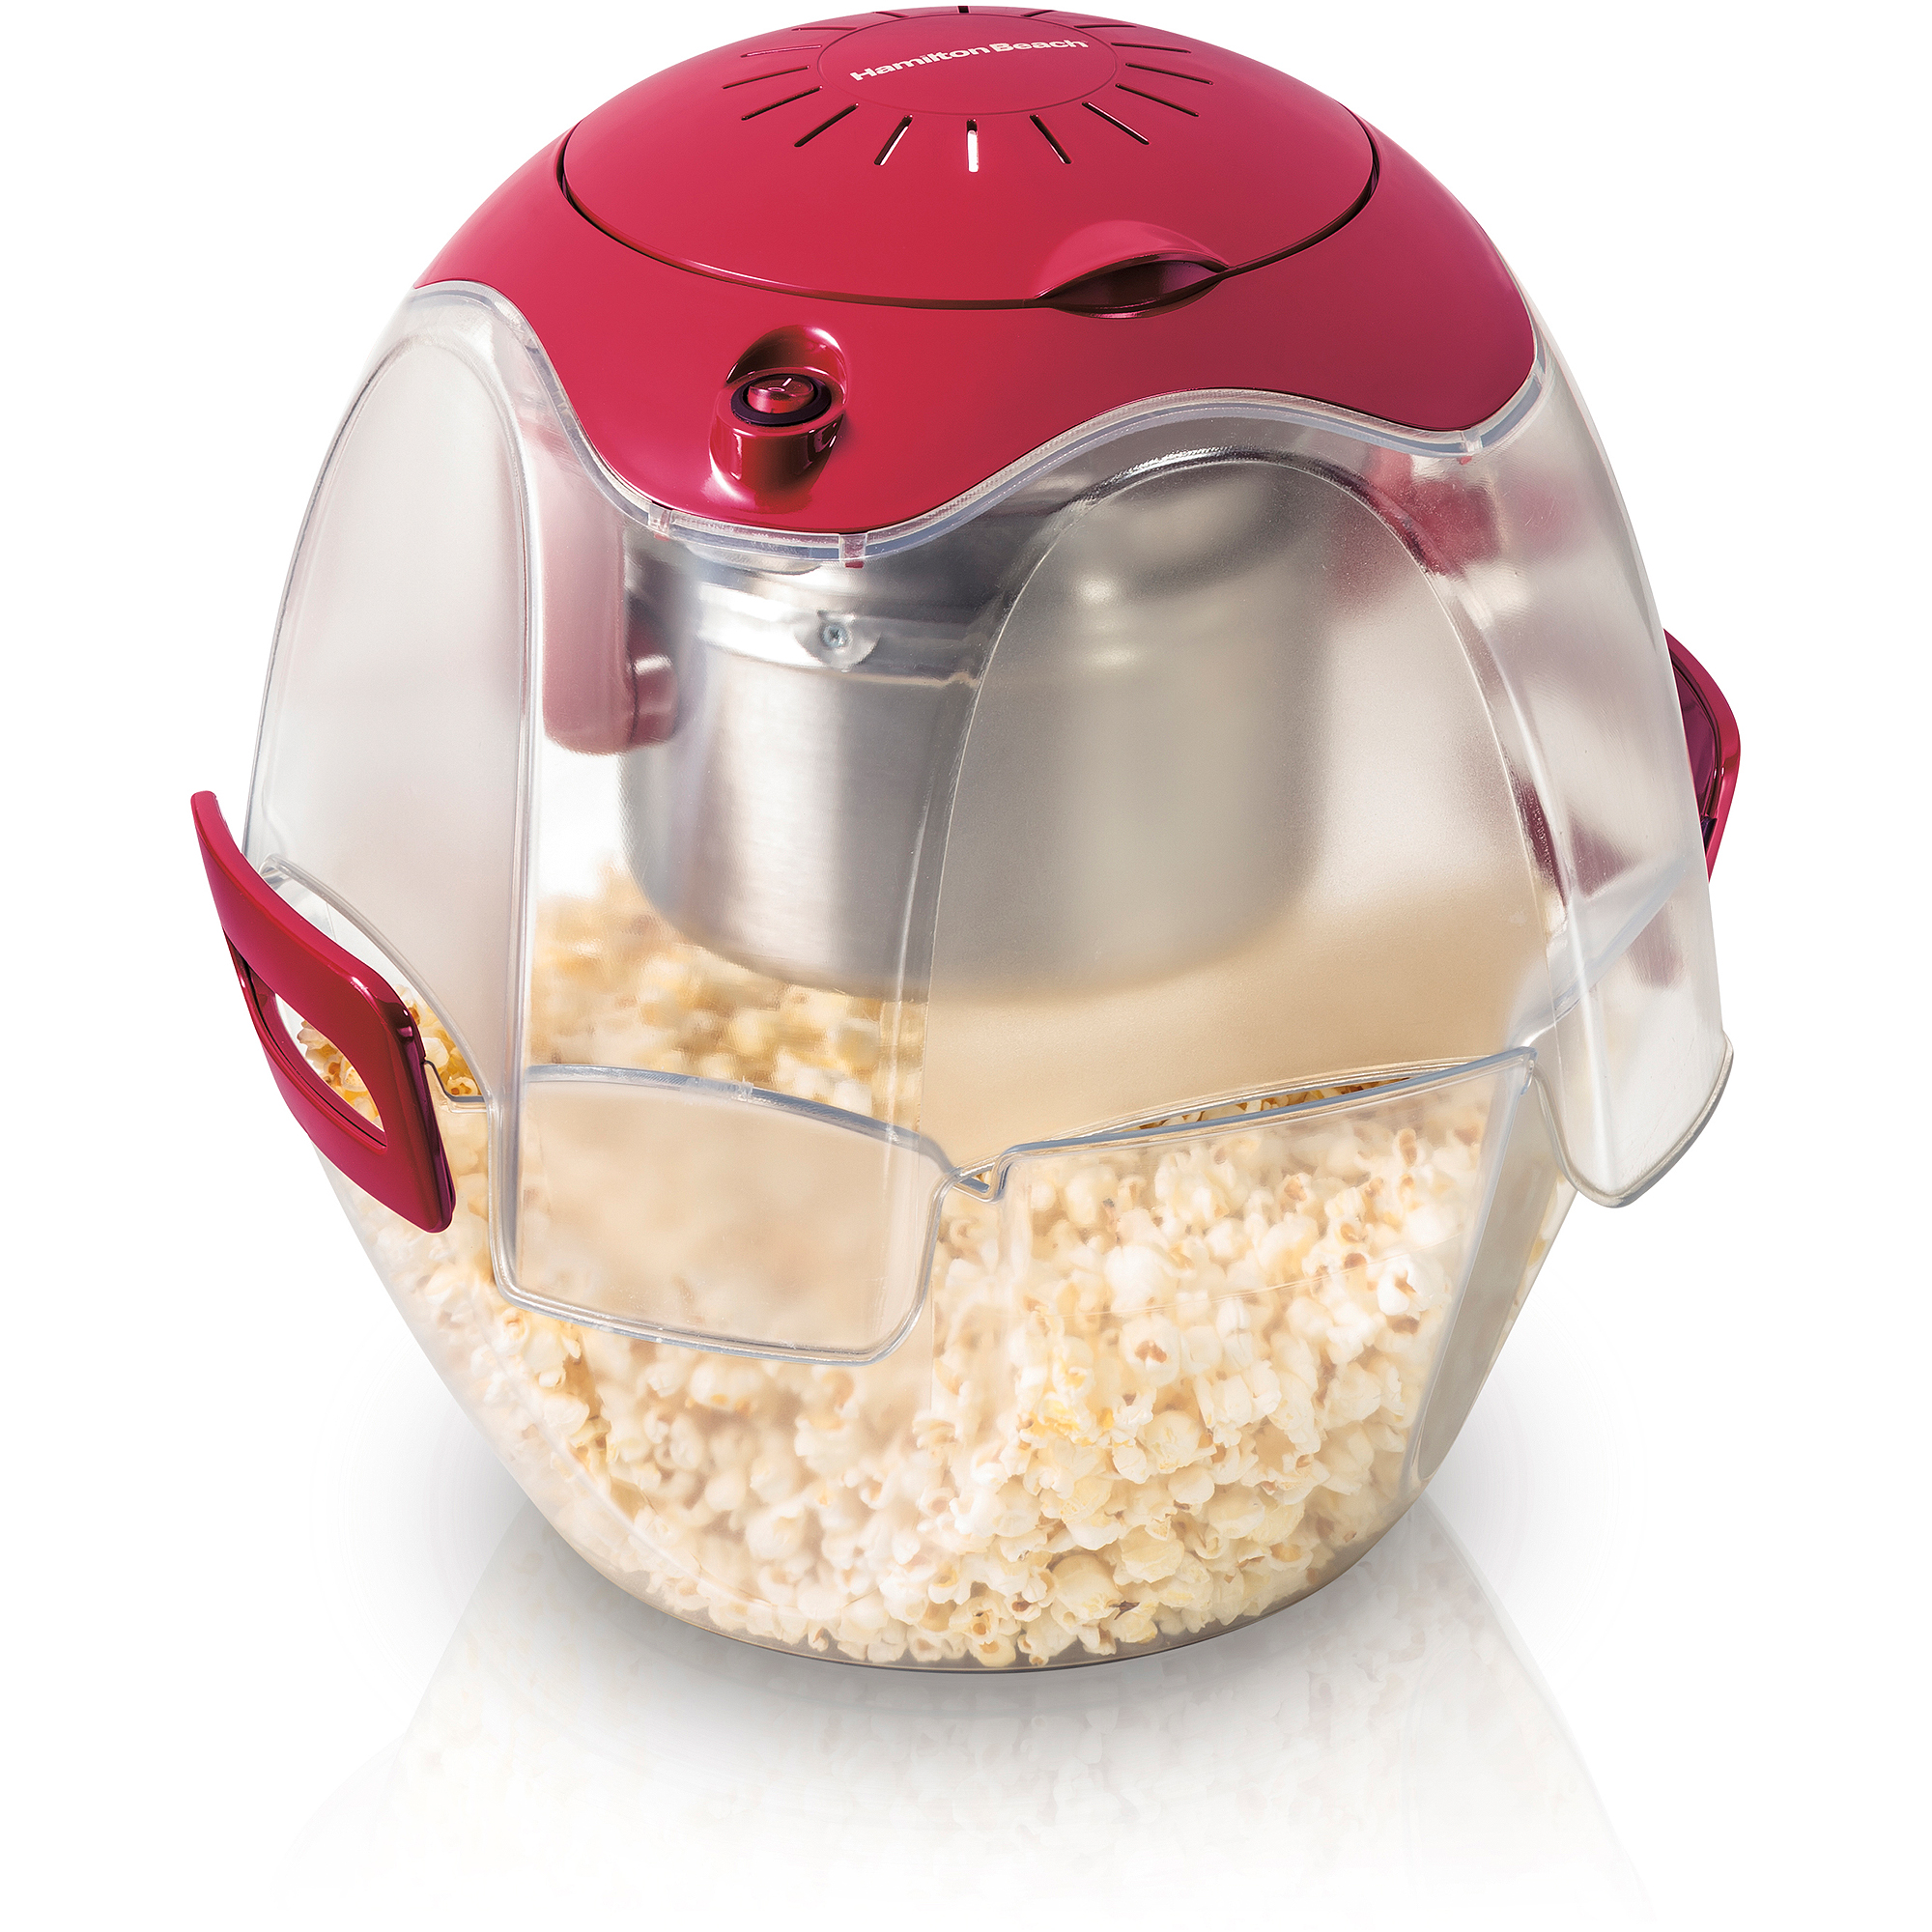 Hamilton Beach Party Popcorn Maker, Red